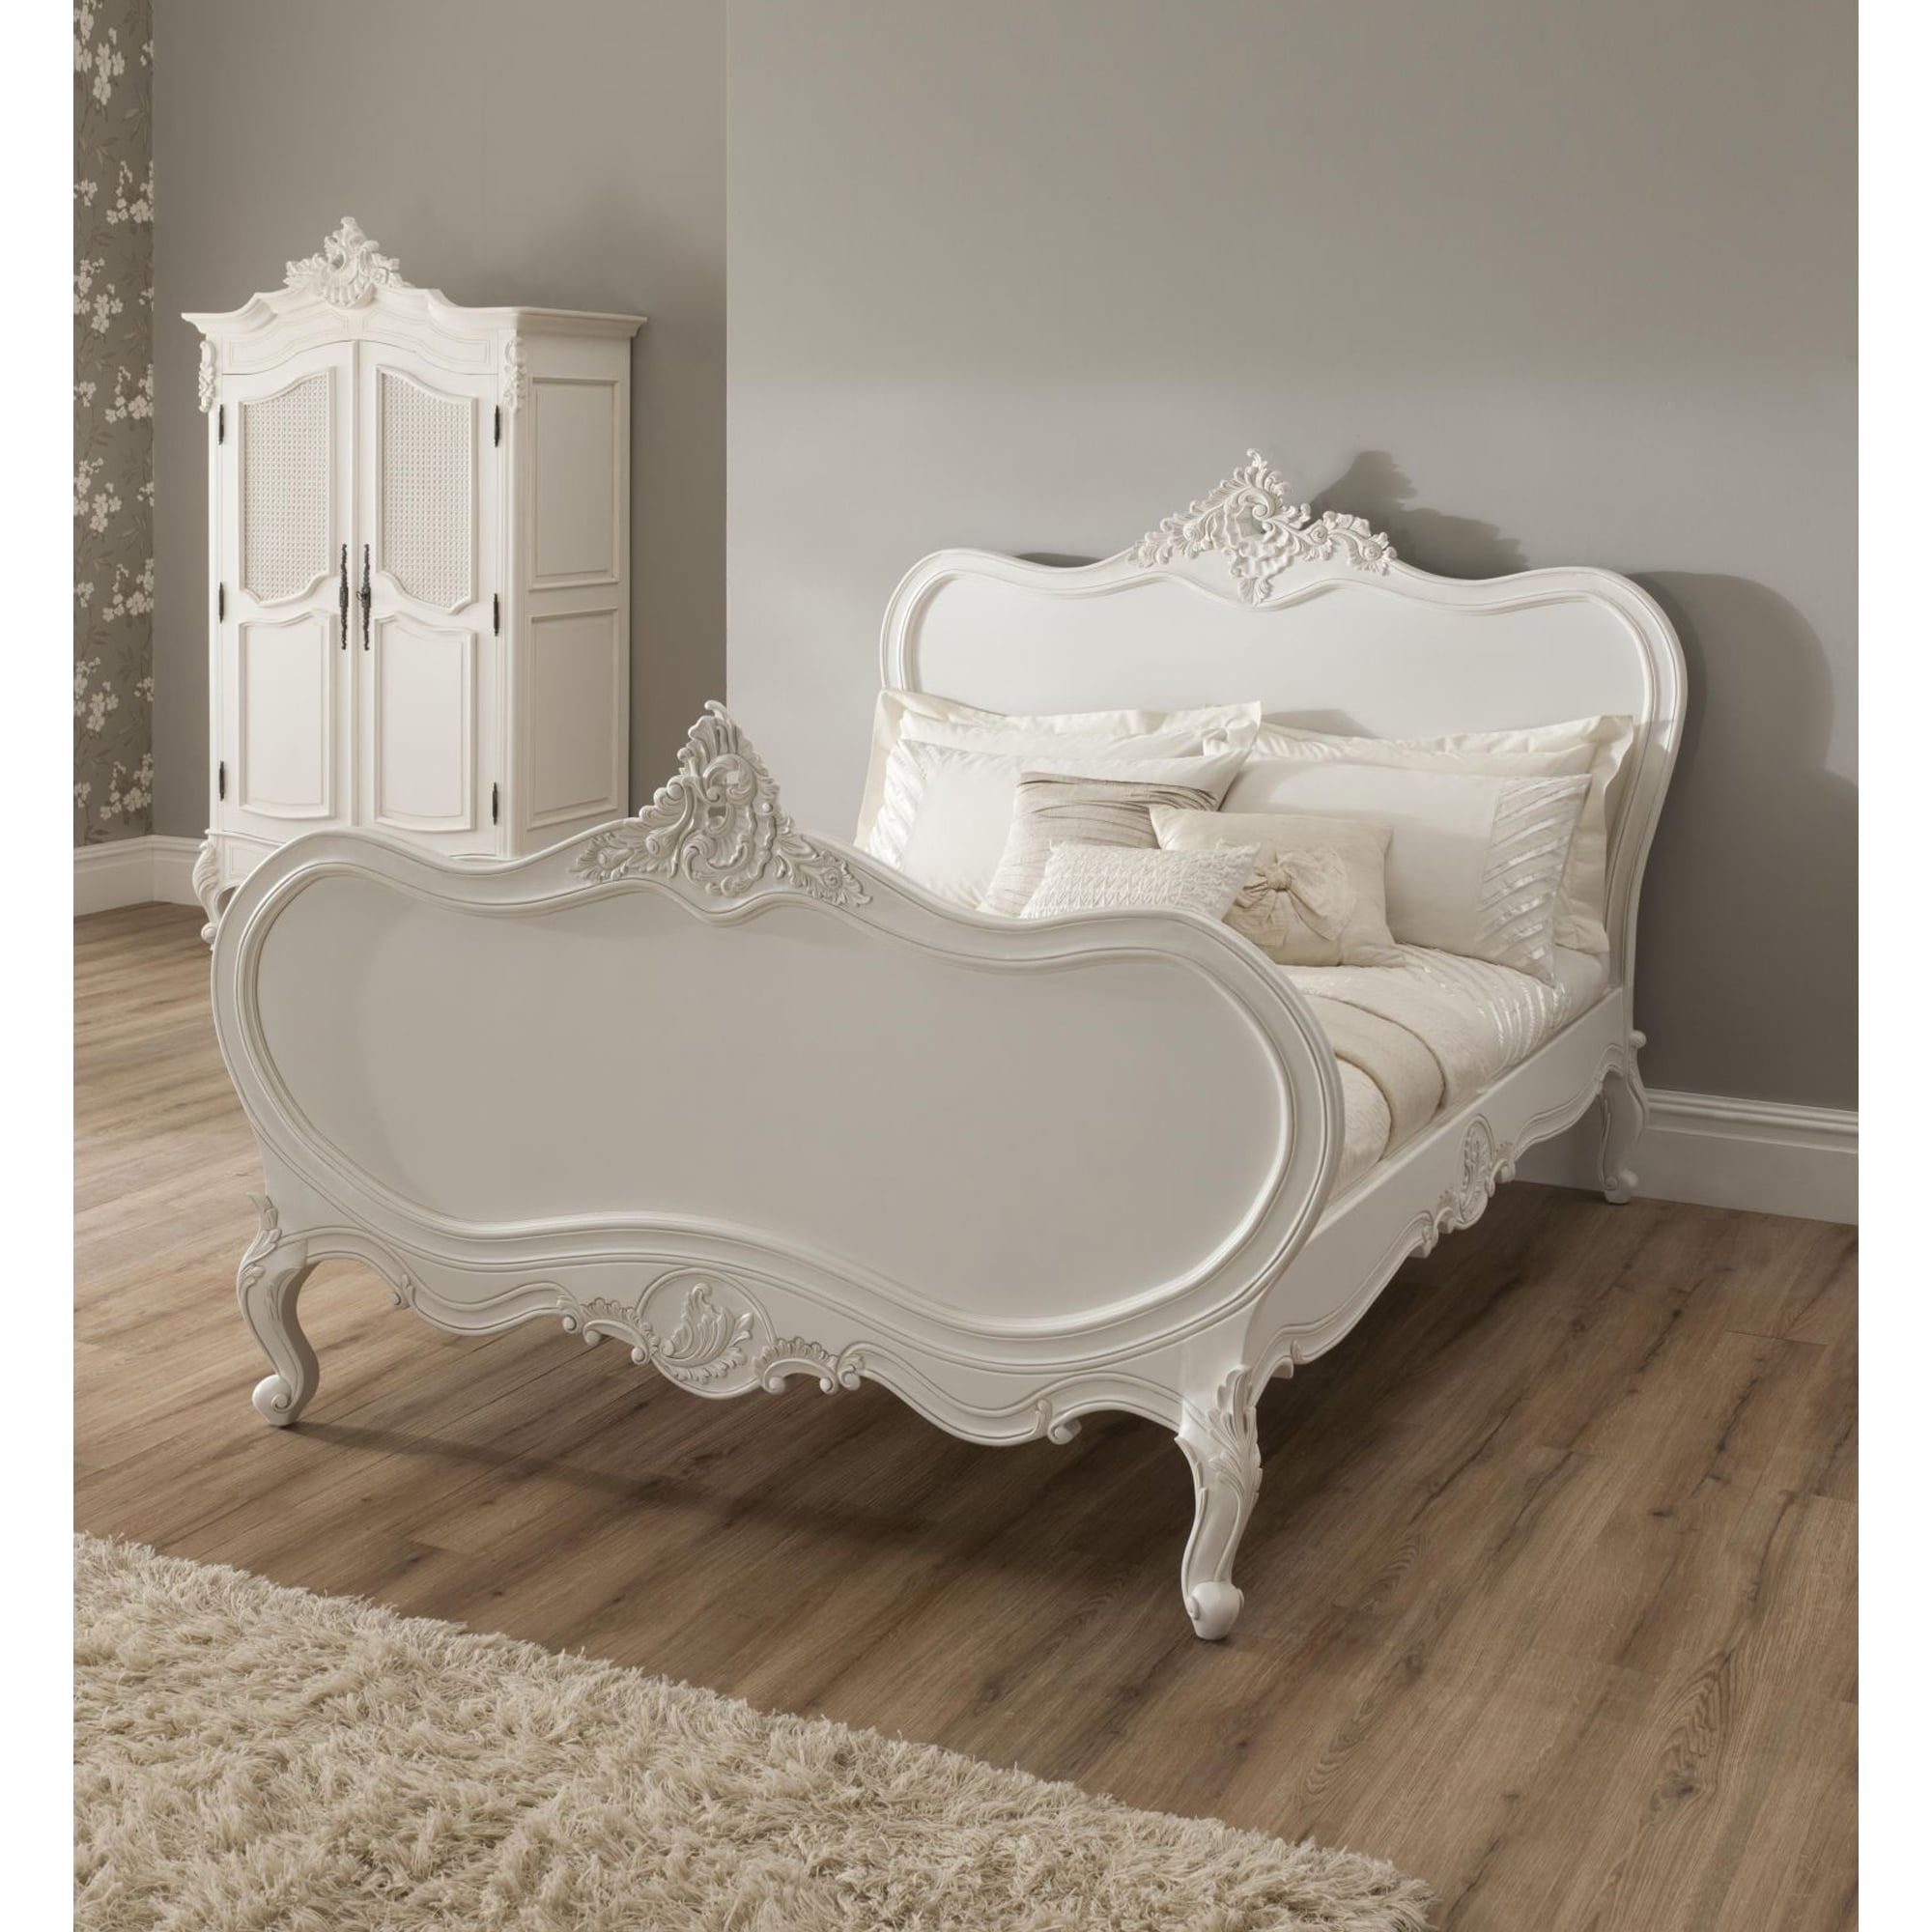 La rochelle antique french bed in a wonderful design and style for French style bedroom furniture